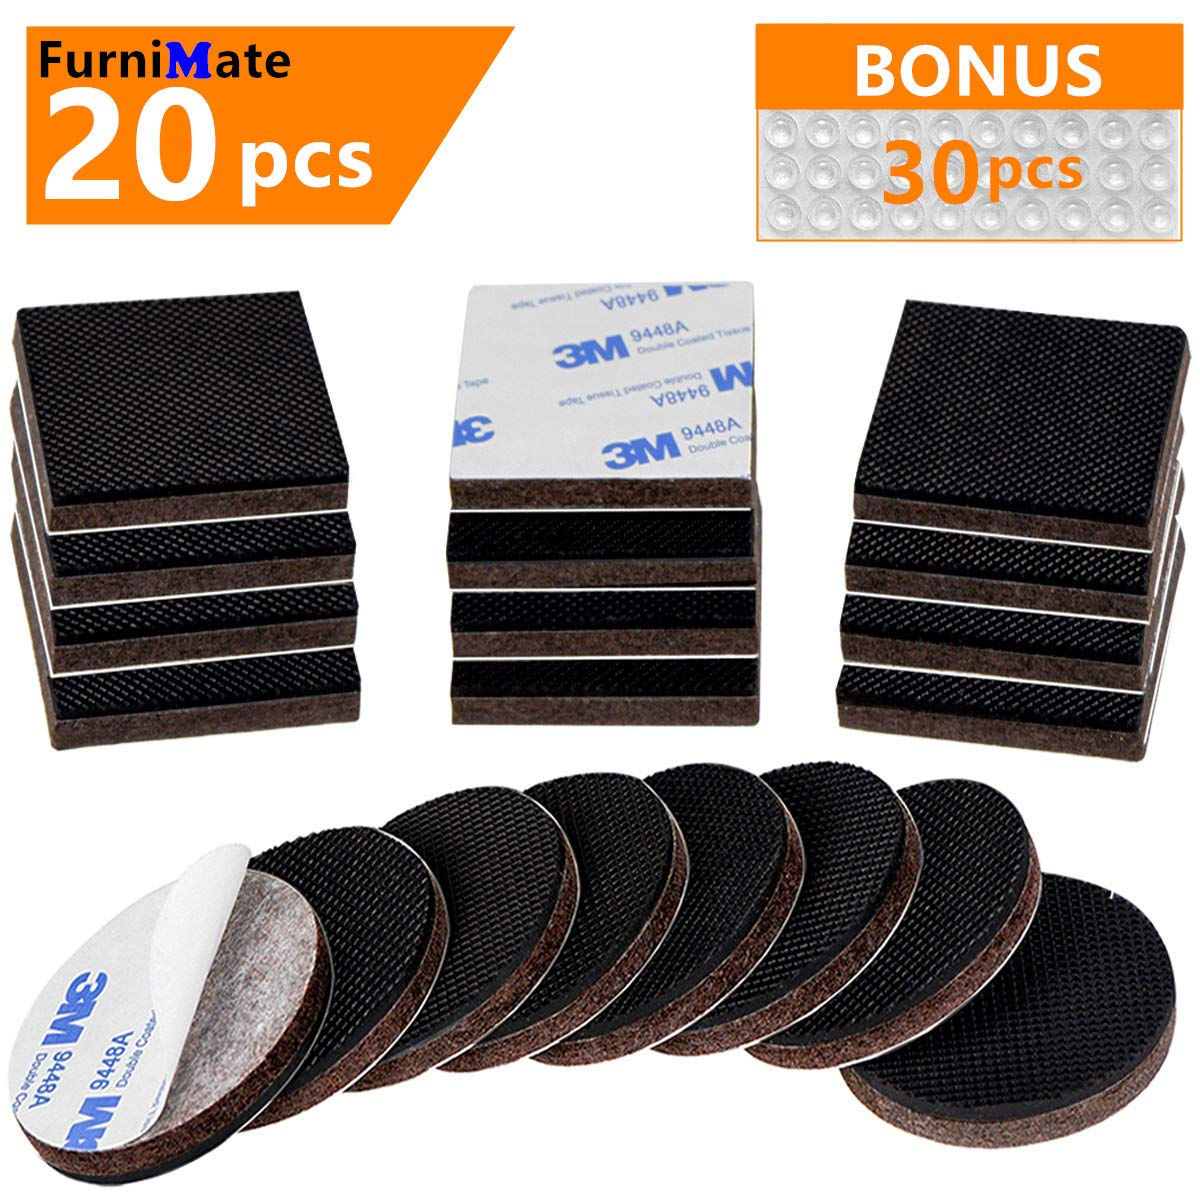 Anti Skid Slip Furniture Rubber Pads 20 Pieces 2' Furniture Stopper Gripper Hardwood Floor Protector Non No Slip Skid Self Adhesive in a Box with 30 Bumper Pads FurniMate FURNITURE PADS-00004B